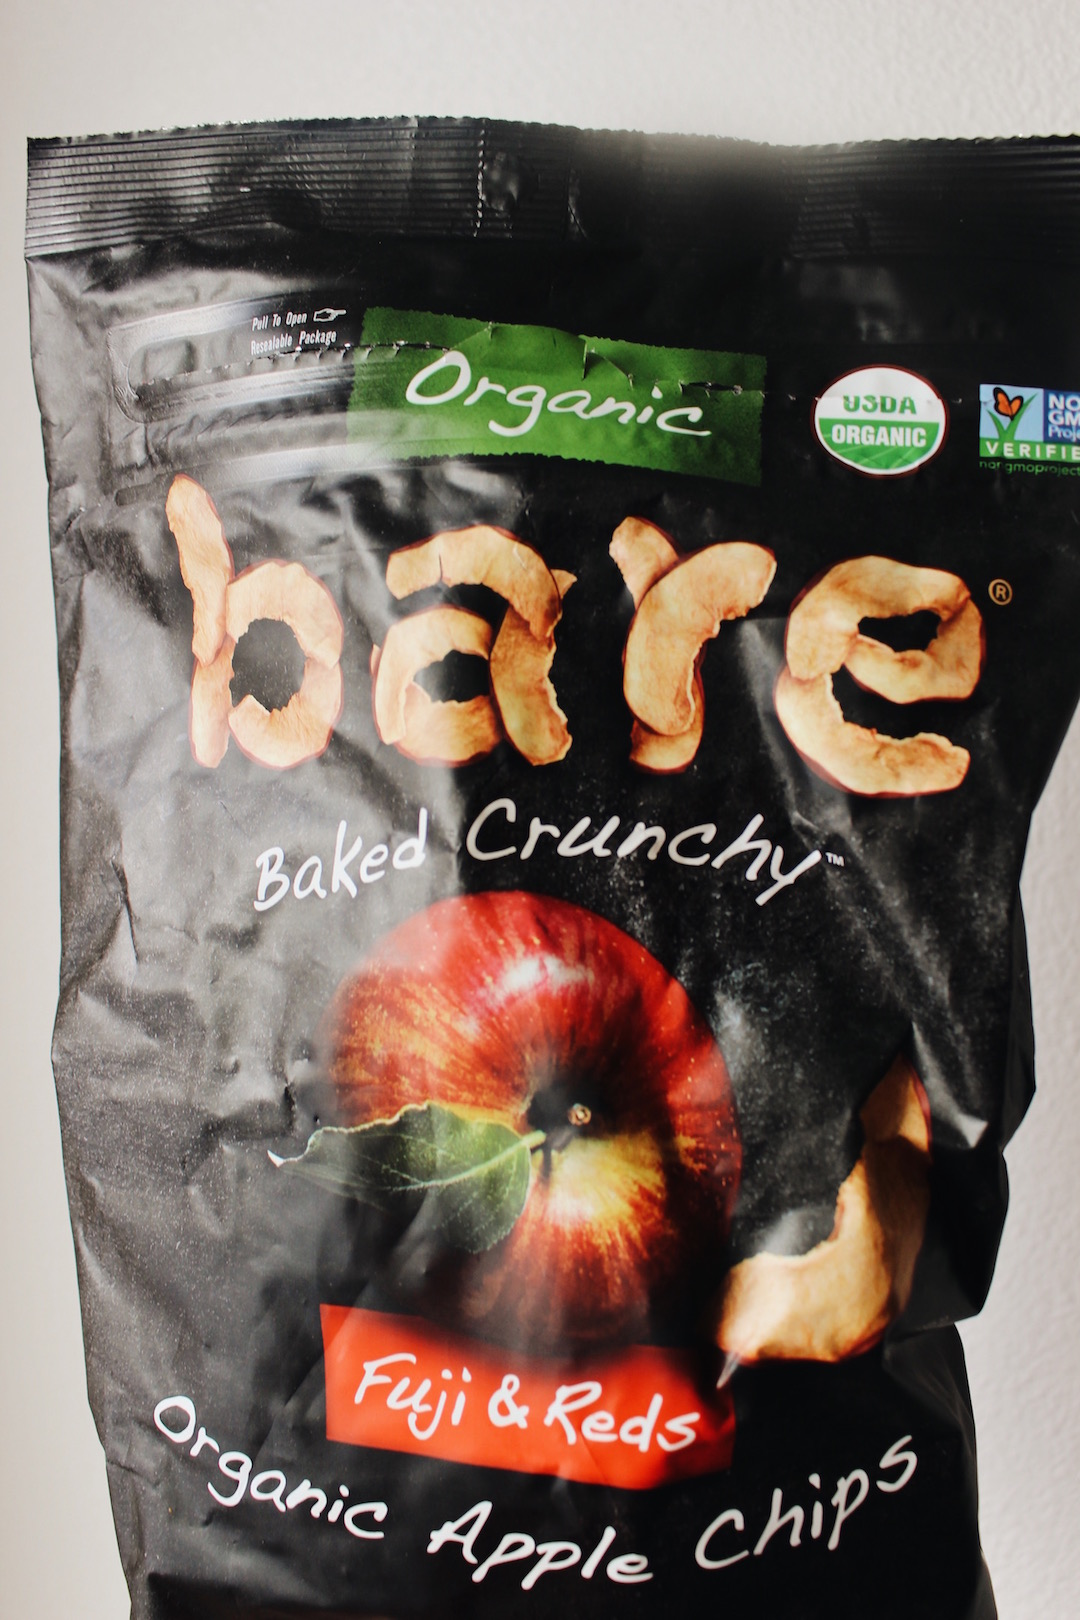 """APPLE CHIPS - These will ensure that you get more fruit into your day. Apples are rich in fiber and antioxidants. Costco, Target and Amazon all carry this brand called """"Bare"""", but you can also make your own! Just heat your oven up to 225 degrees, slice up your favorite kinds of apples, maybe even add a little cinnamon, and let them crisp up for about 45 minutes. (Maybe even add peanut butter on the side for more filling snack.)"""